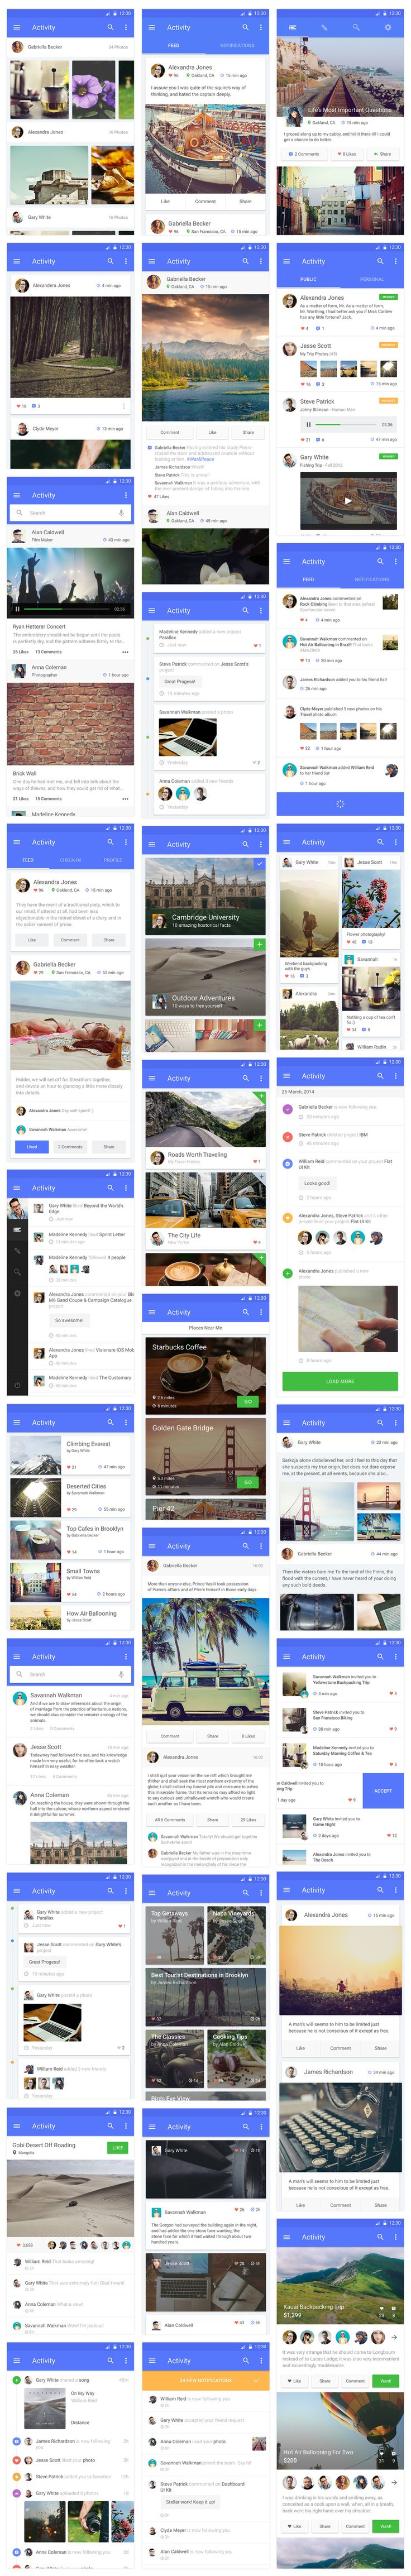 Material UI Kit - Activity